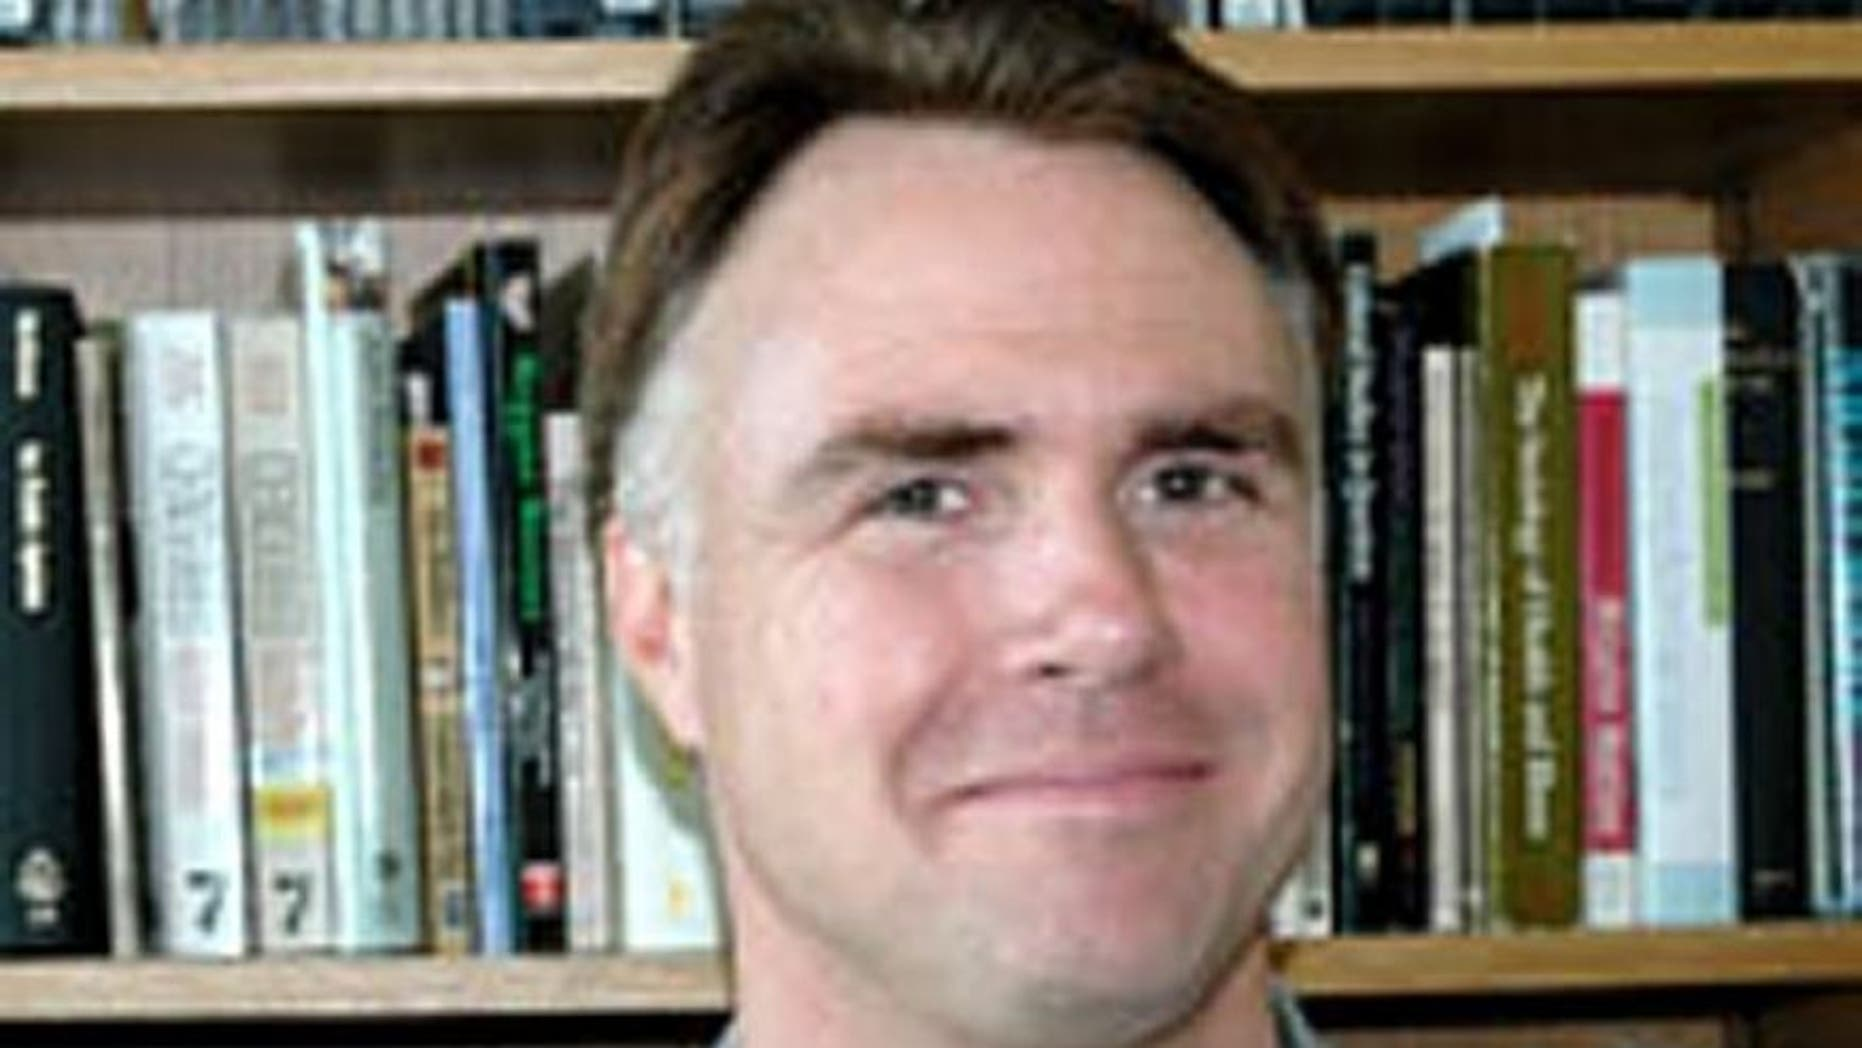 James Tracy, a fired tenured professor, will argue in front of the jury this week that his free speech rights were violated after the university fired him.